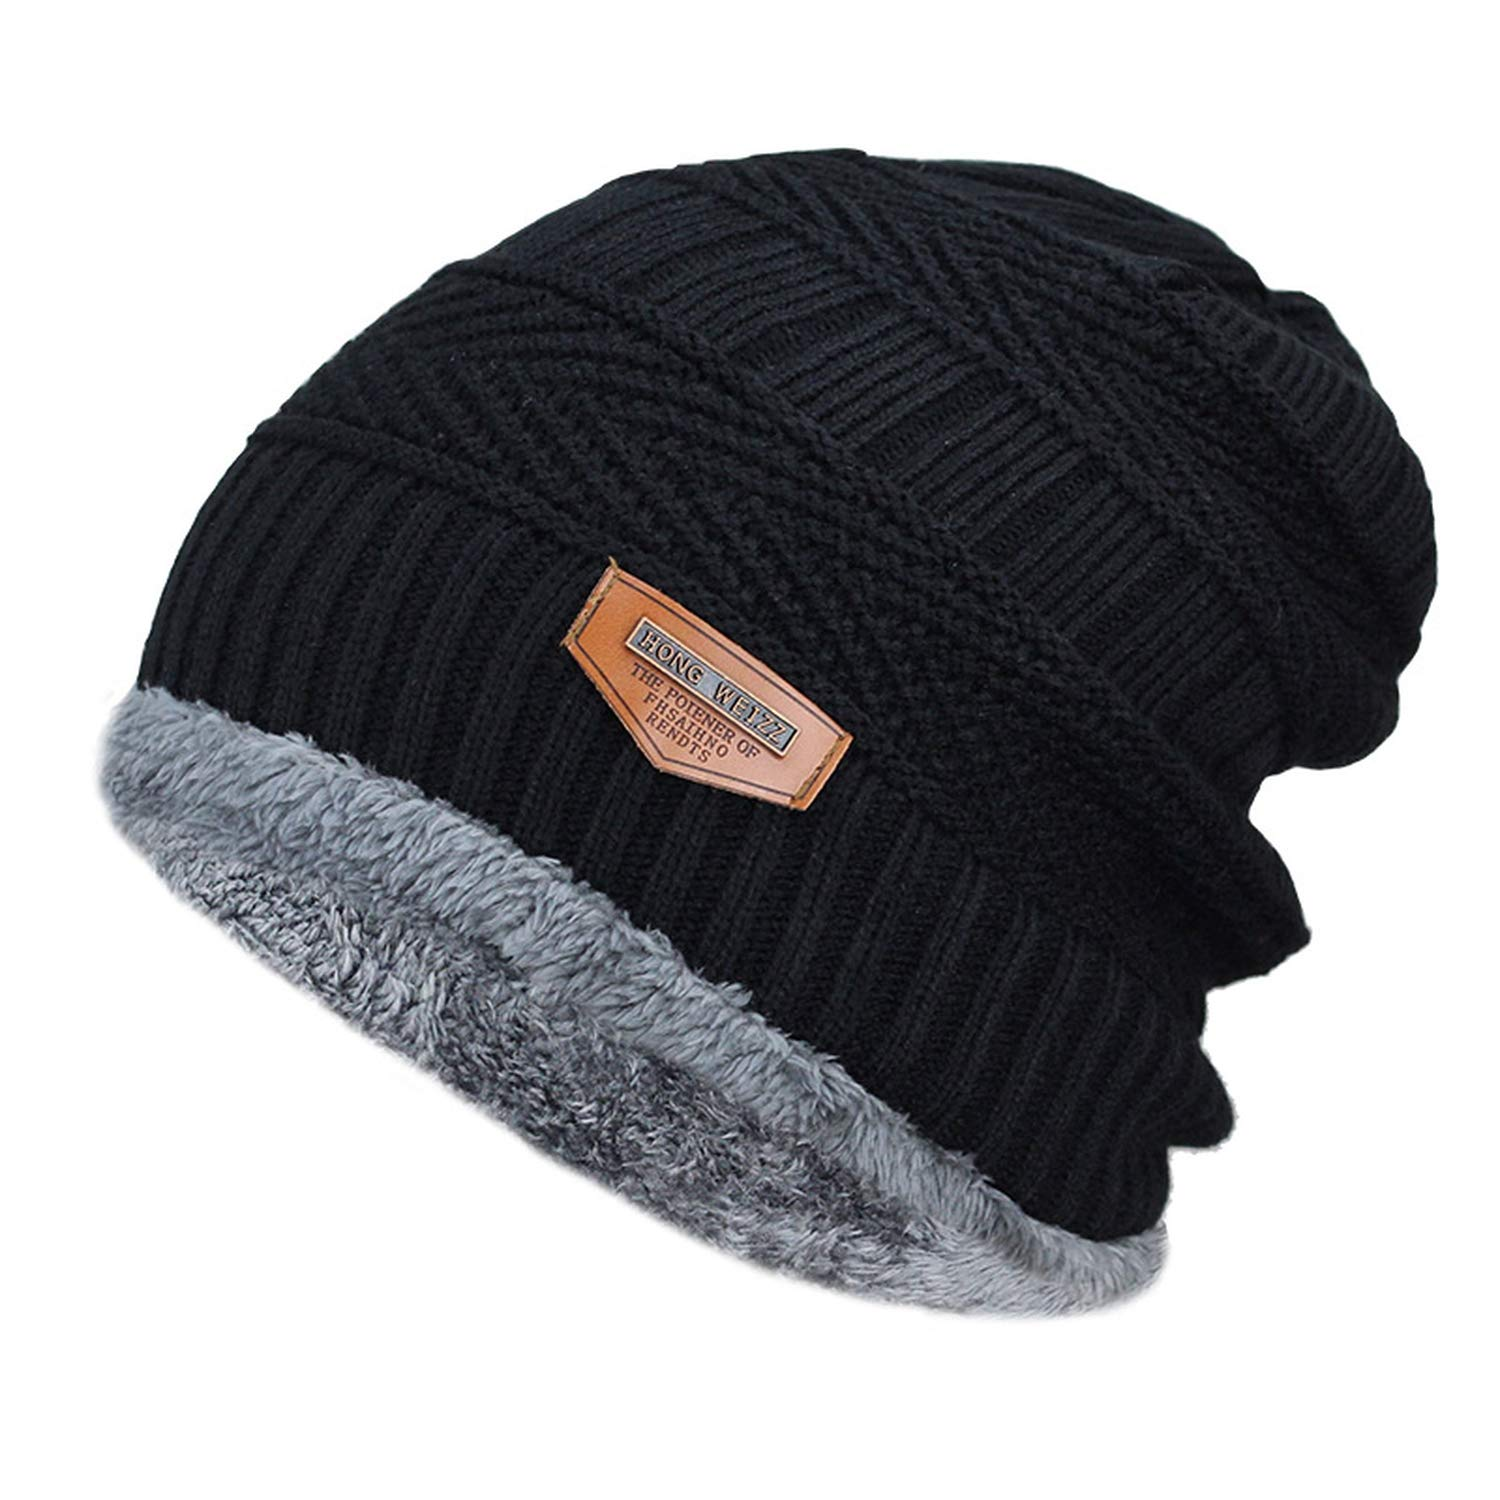 Mens Winter Hat Knitted Hats Fall Hat Thick and Warm Beanie Soft Knitted Beanies